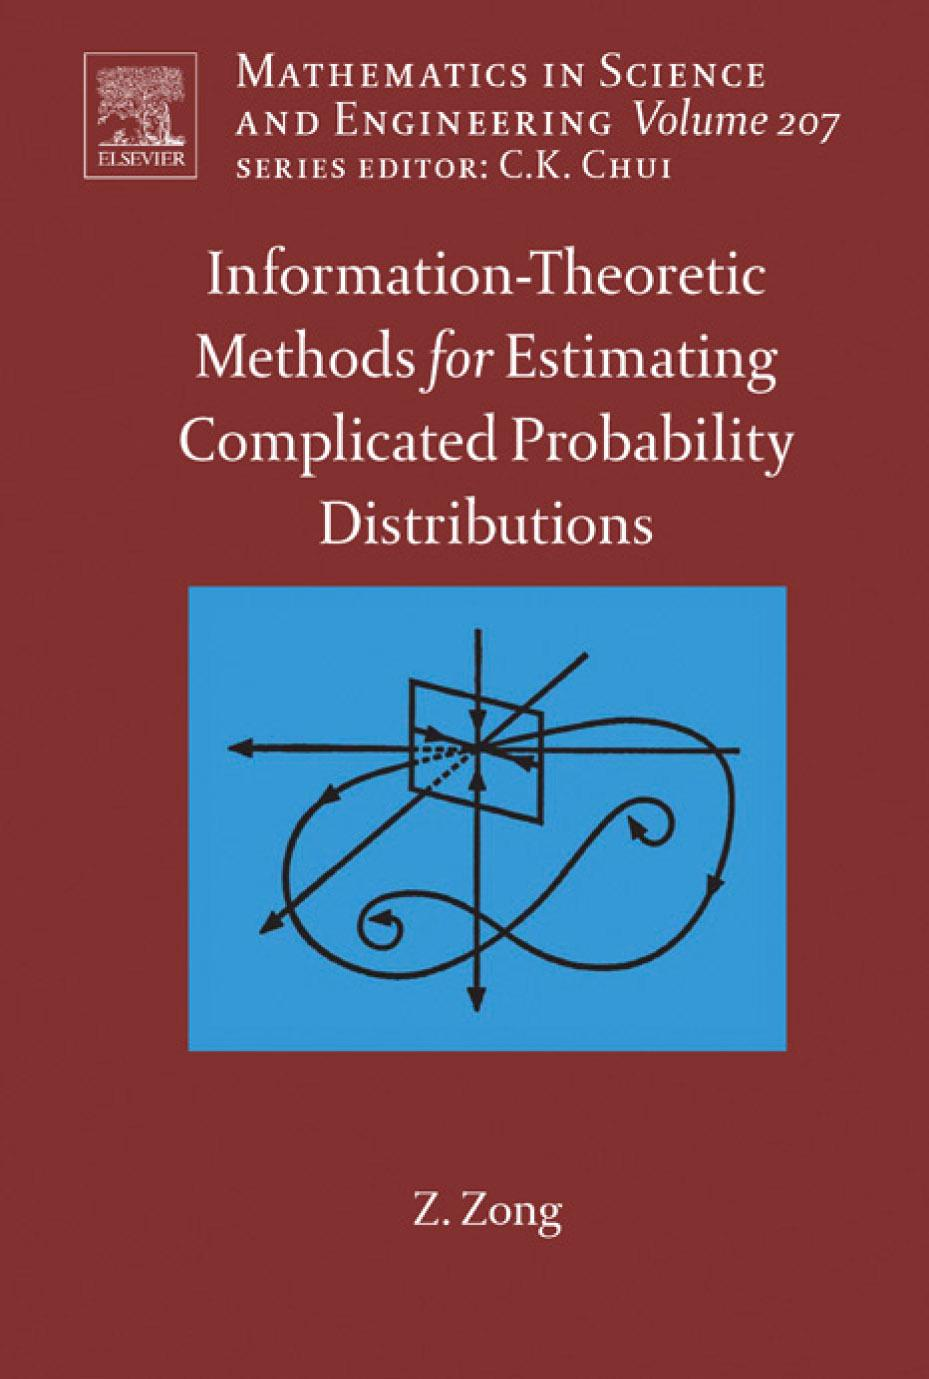 Information-Theoretic Methods for Estimating of Complicated Probability Distributions EB9780080463858